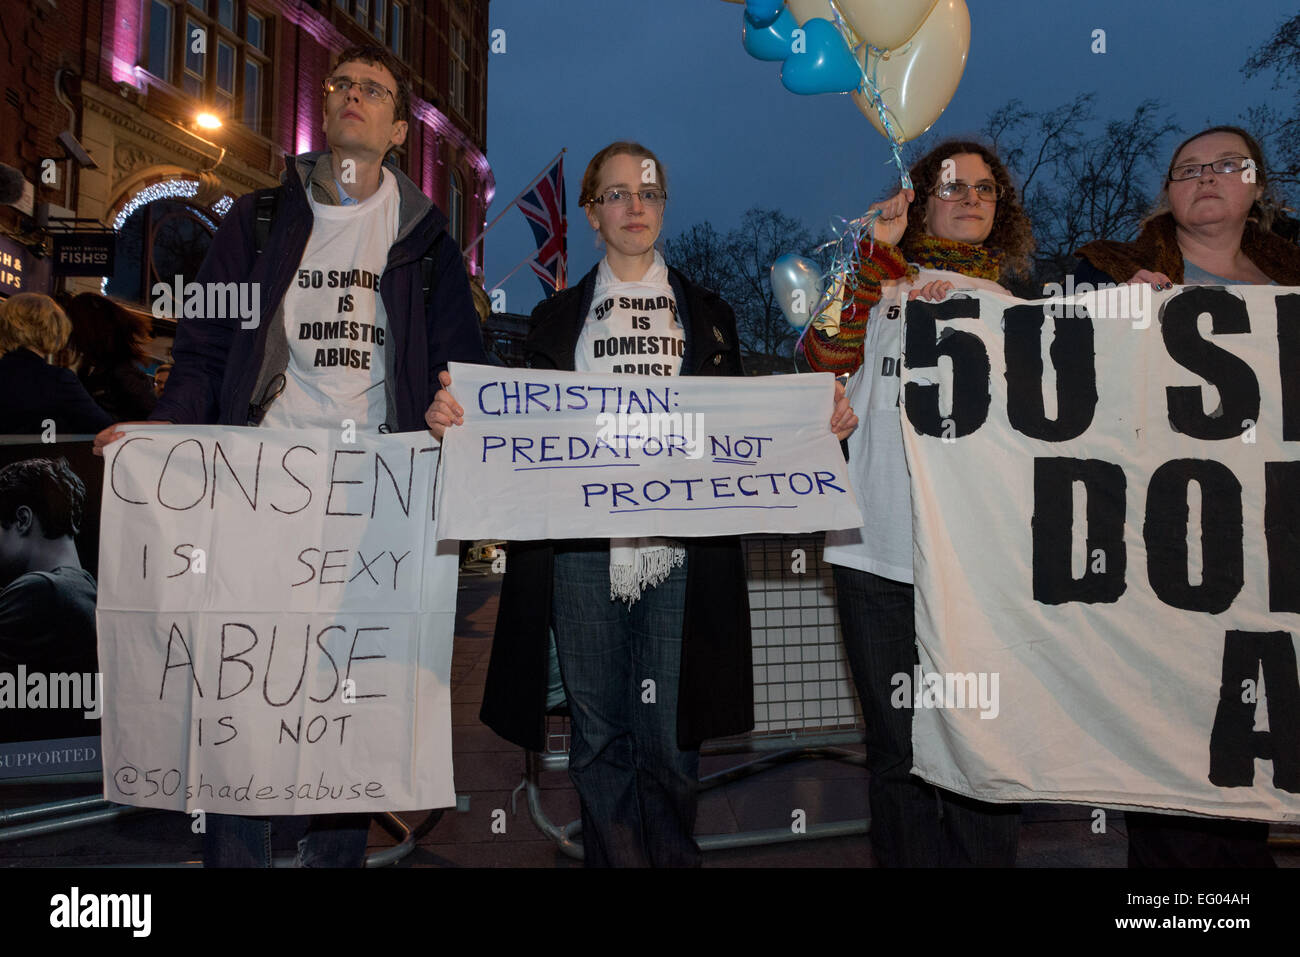 """Fifty Shades ist Missbrauch"" Protest bei Filmpremiere in London Odeon Kino Stockbild"